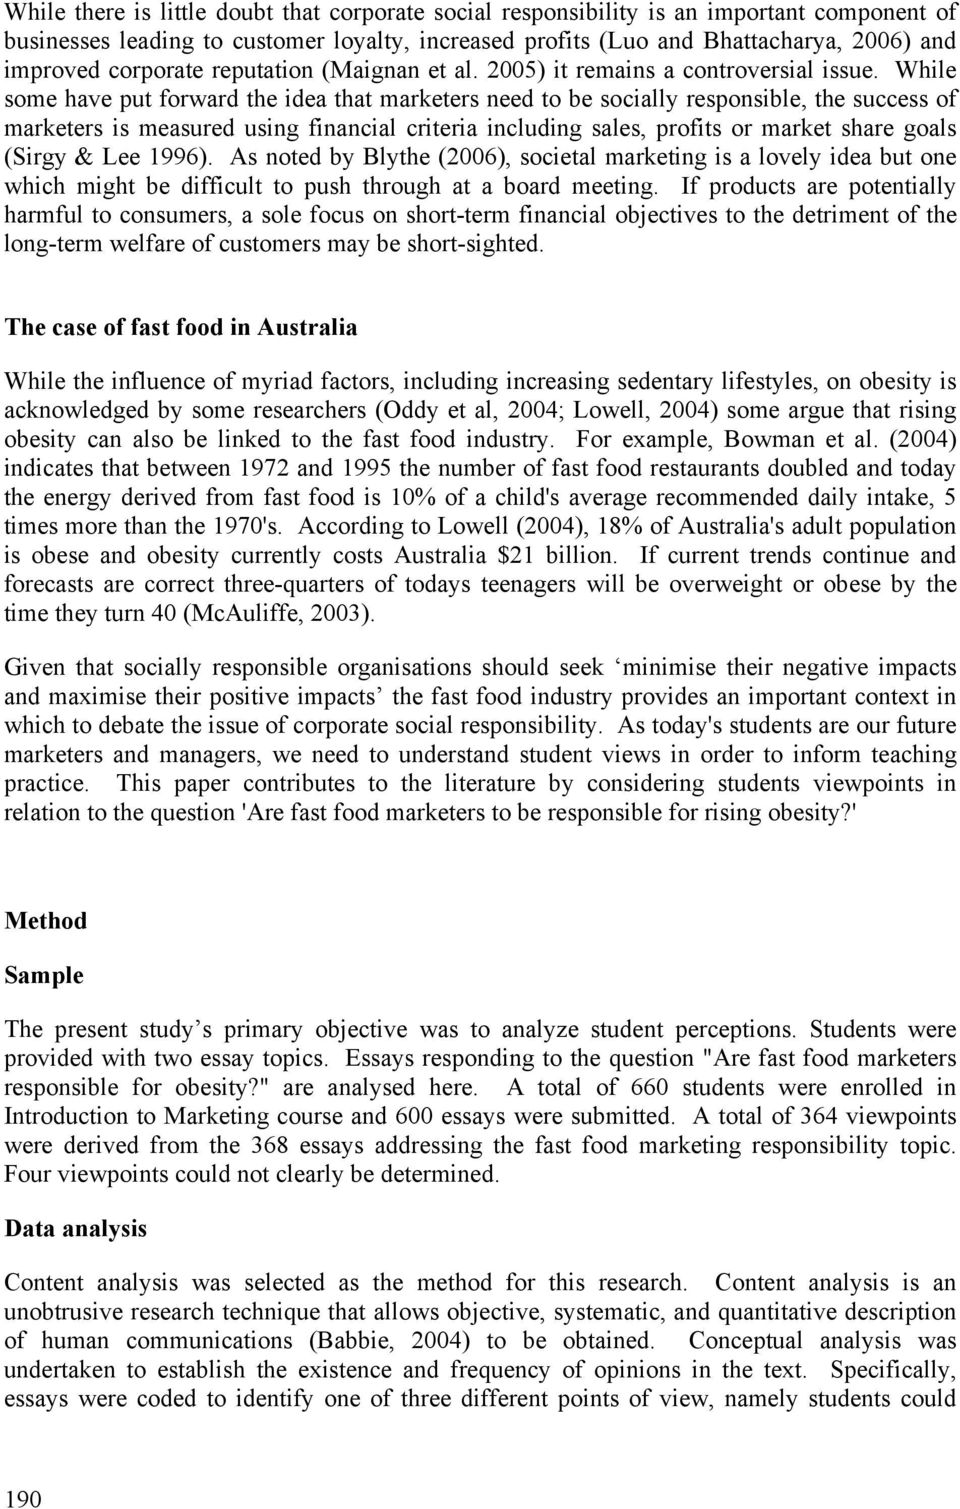 Student views on corporate social responsibility in an Australian ...